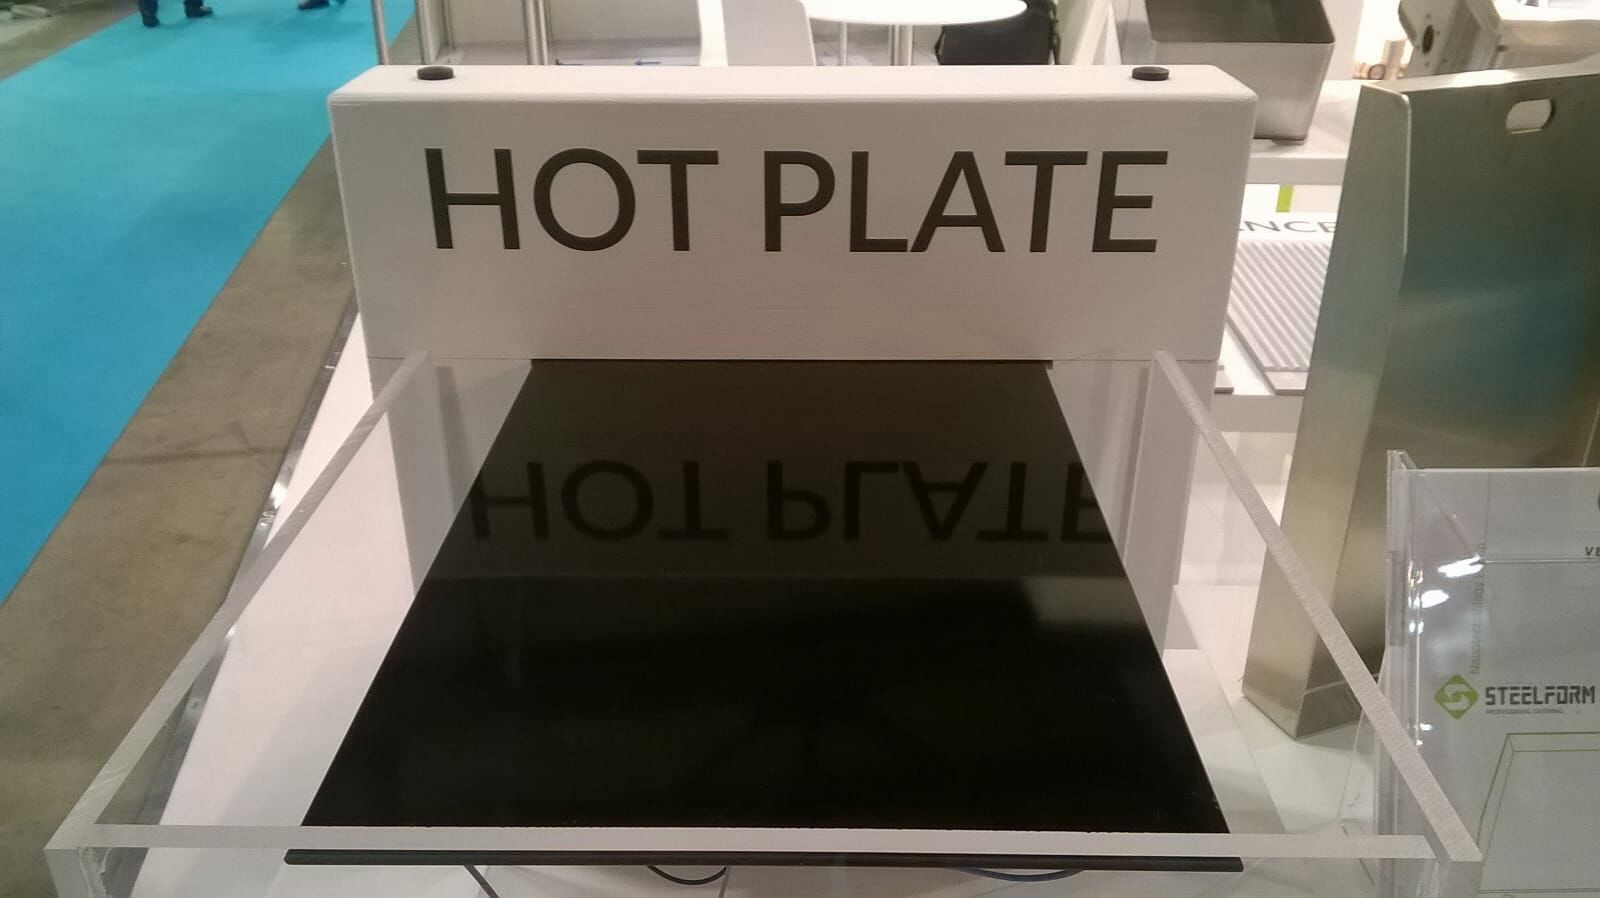 Hot plate by nanocarbon up polilink for Piani di hot house gratuiti